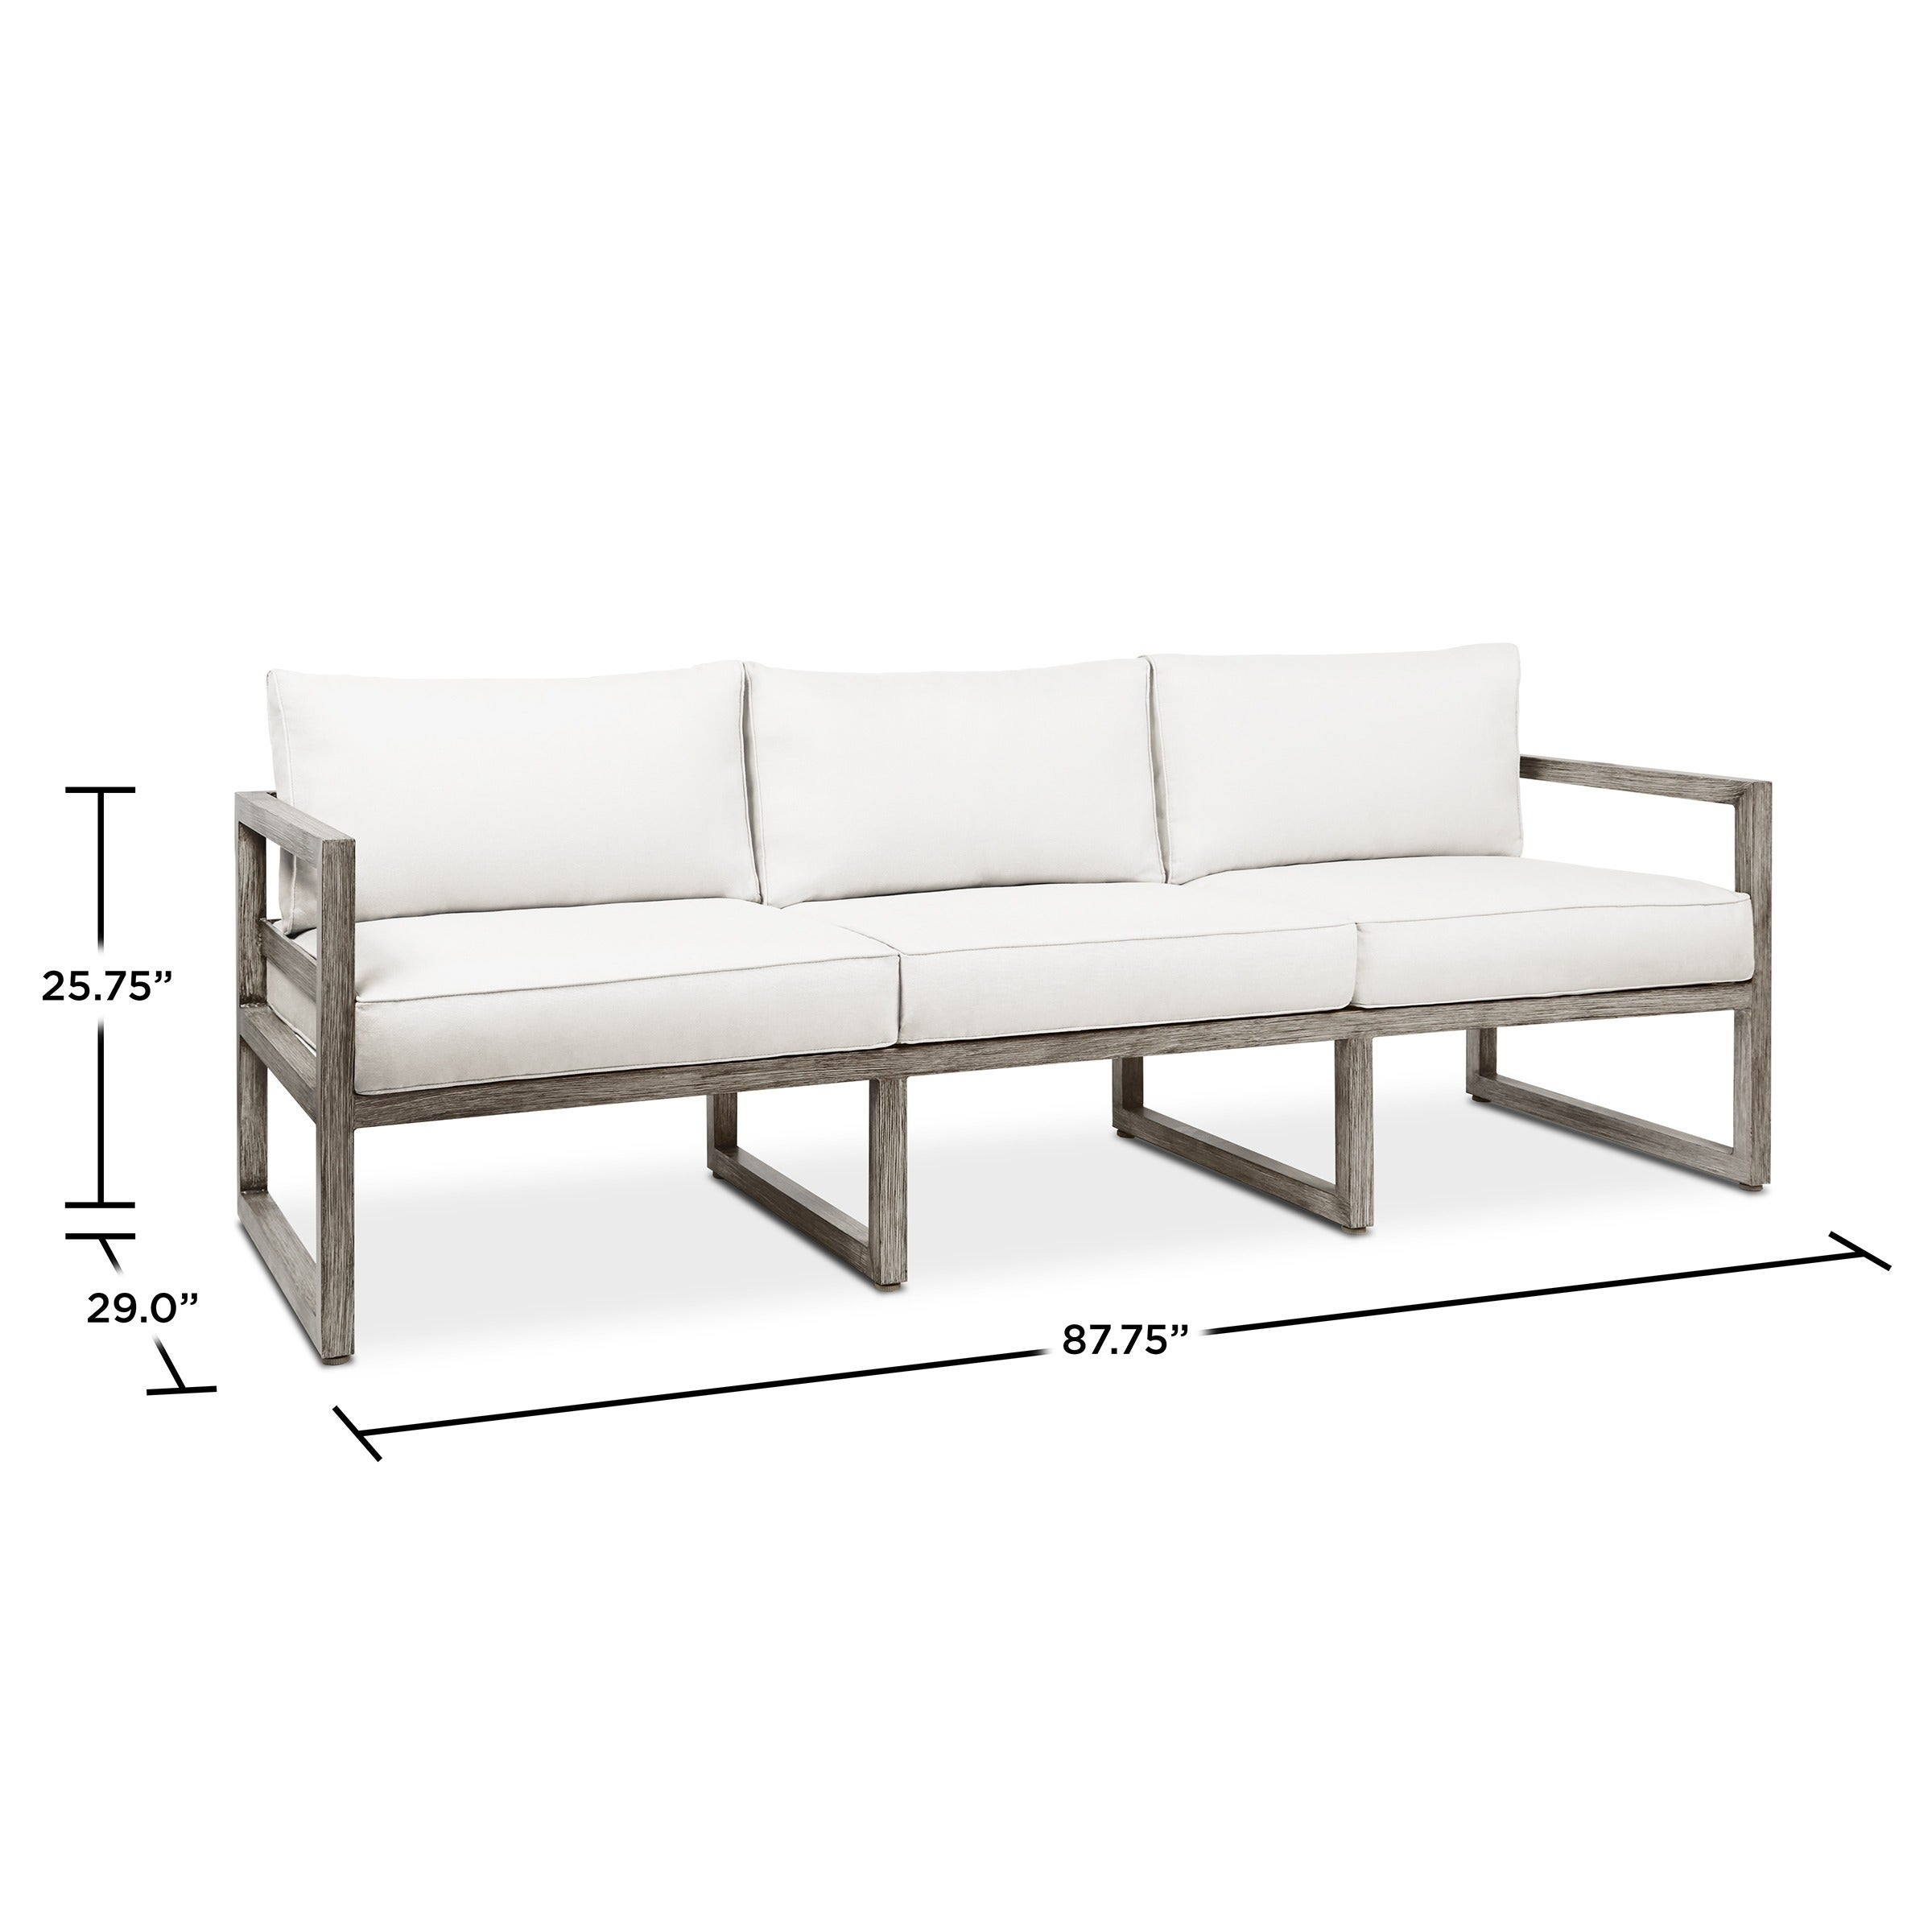 Shop Monaco Outdoor 3 Seat Sofa By Real Flame   Free Shipping Today    Overstock.com   12135529